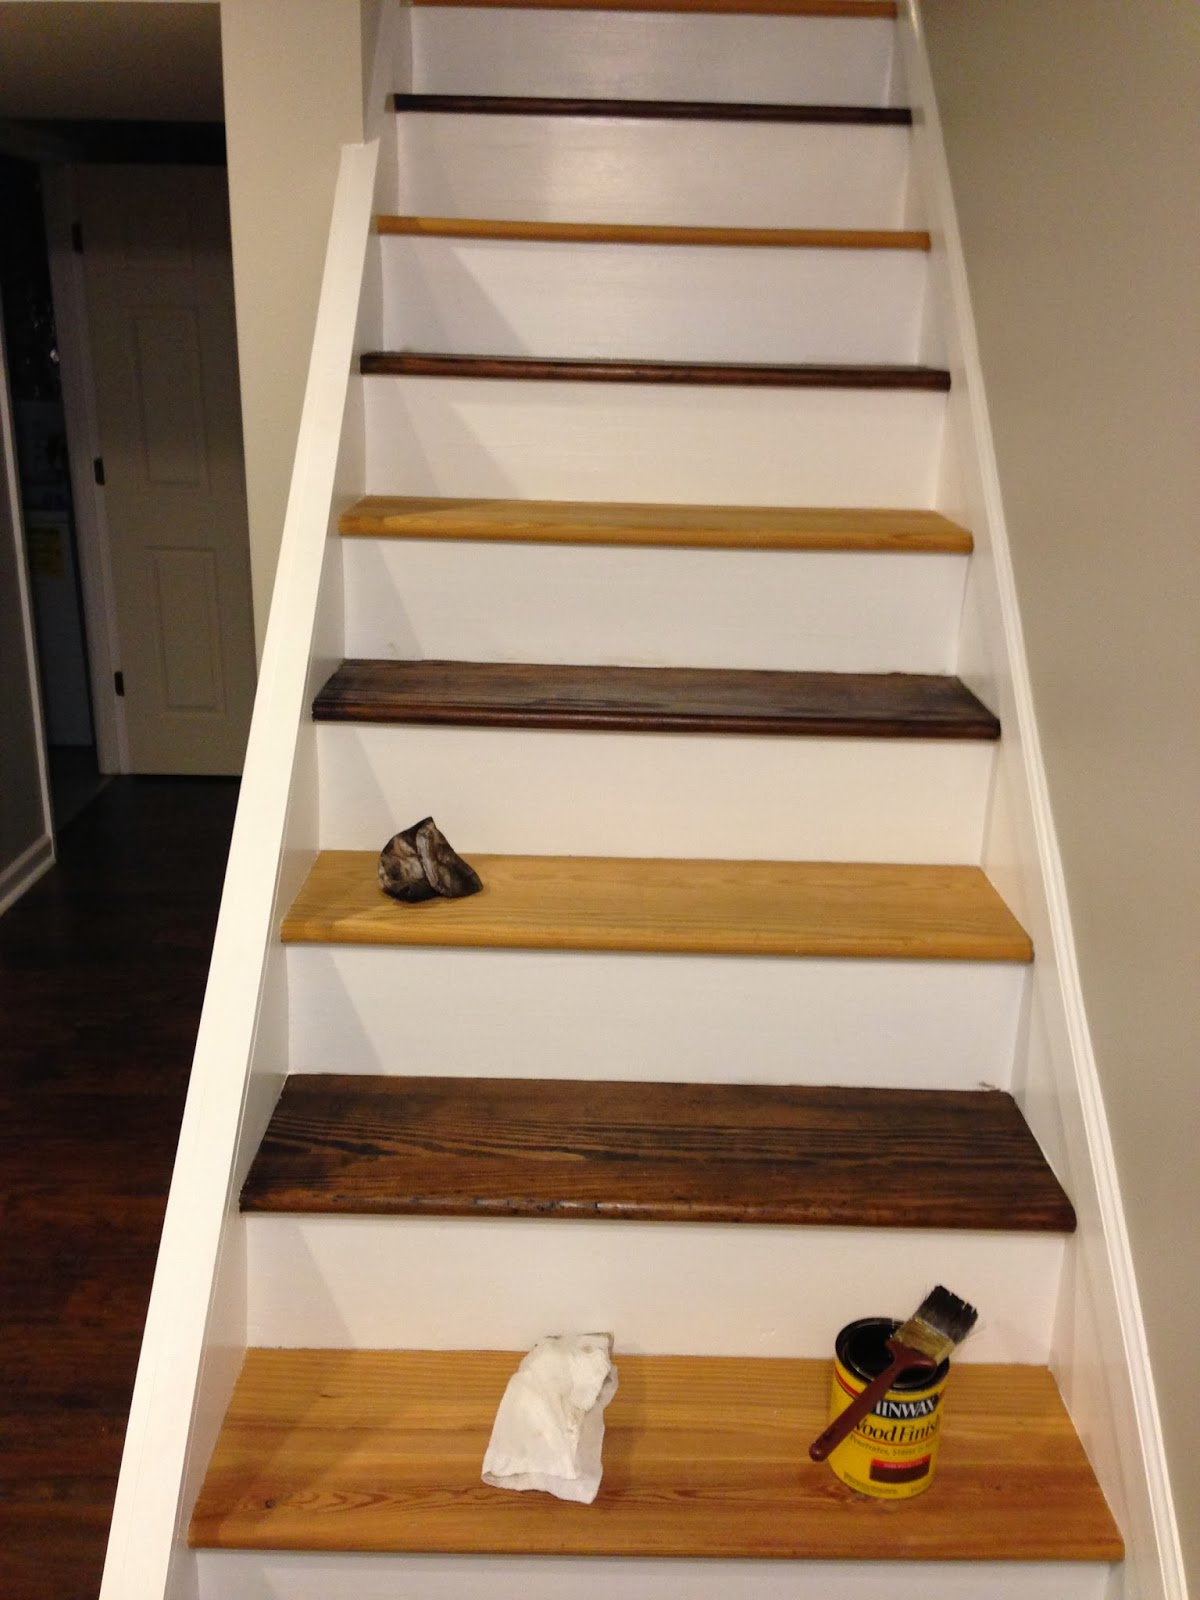 Basement Stair Trim: Chic Meets Healthy: REFINISHING BASEMENT STAIRS